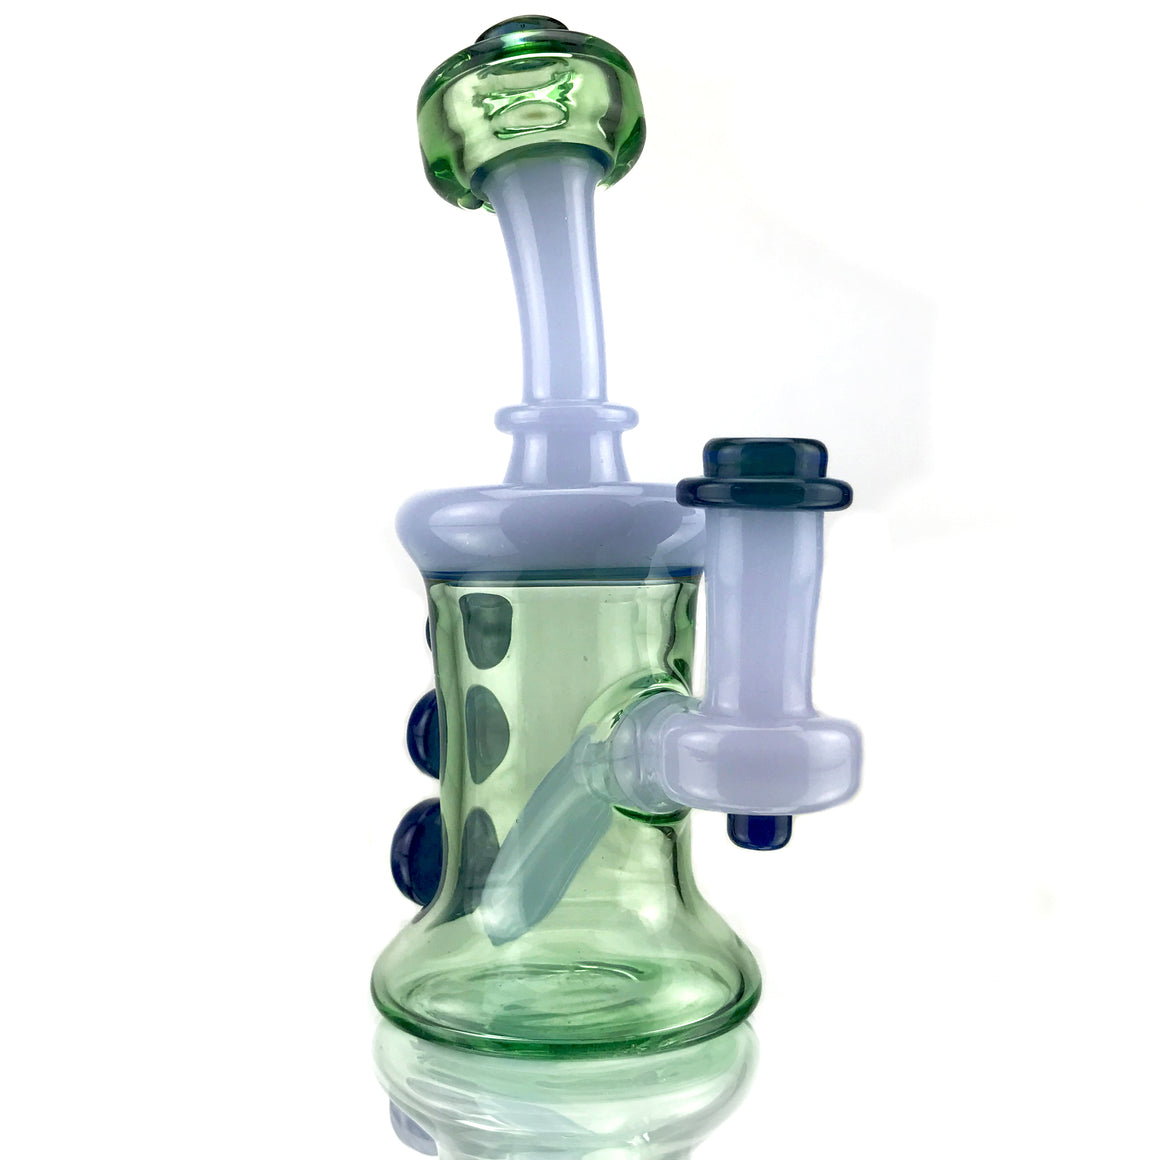 CFL Reactive Banger Hanger - Lavender Cheese/Electric Green - 10mm Female